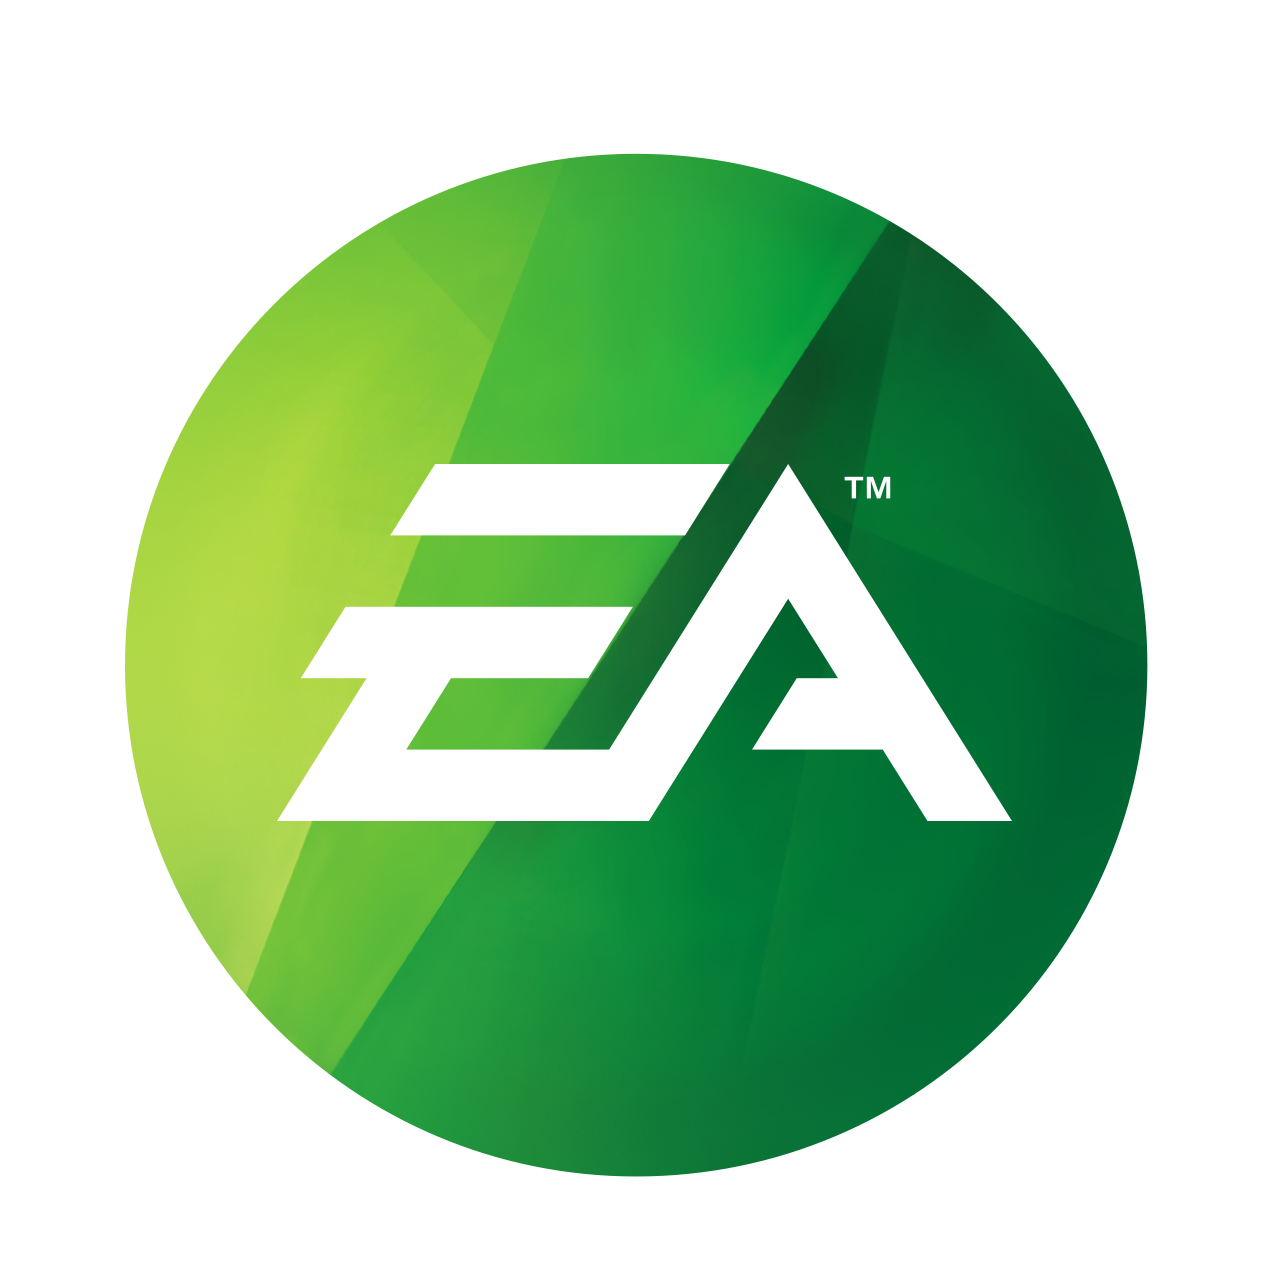 Ea and Logos on Pinterest - HD Wallpapers